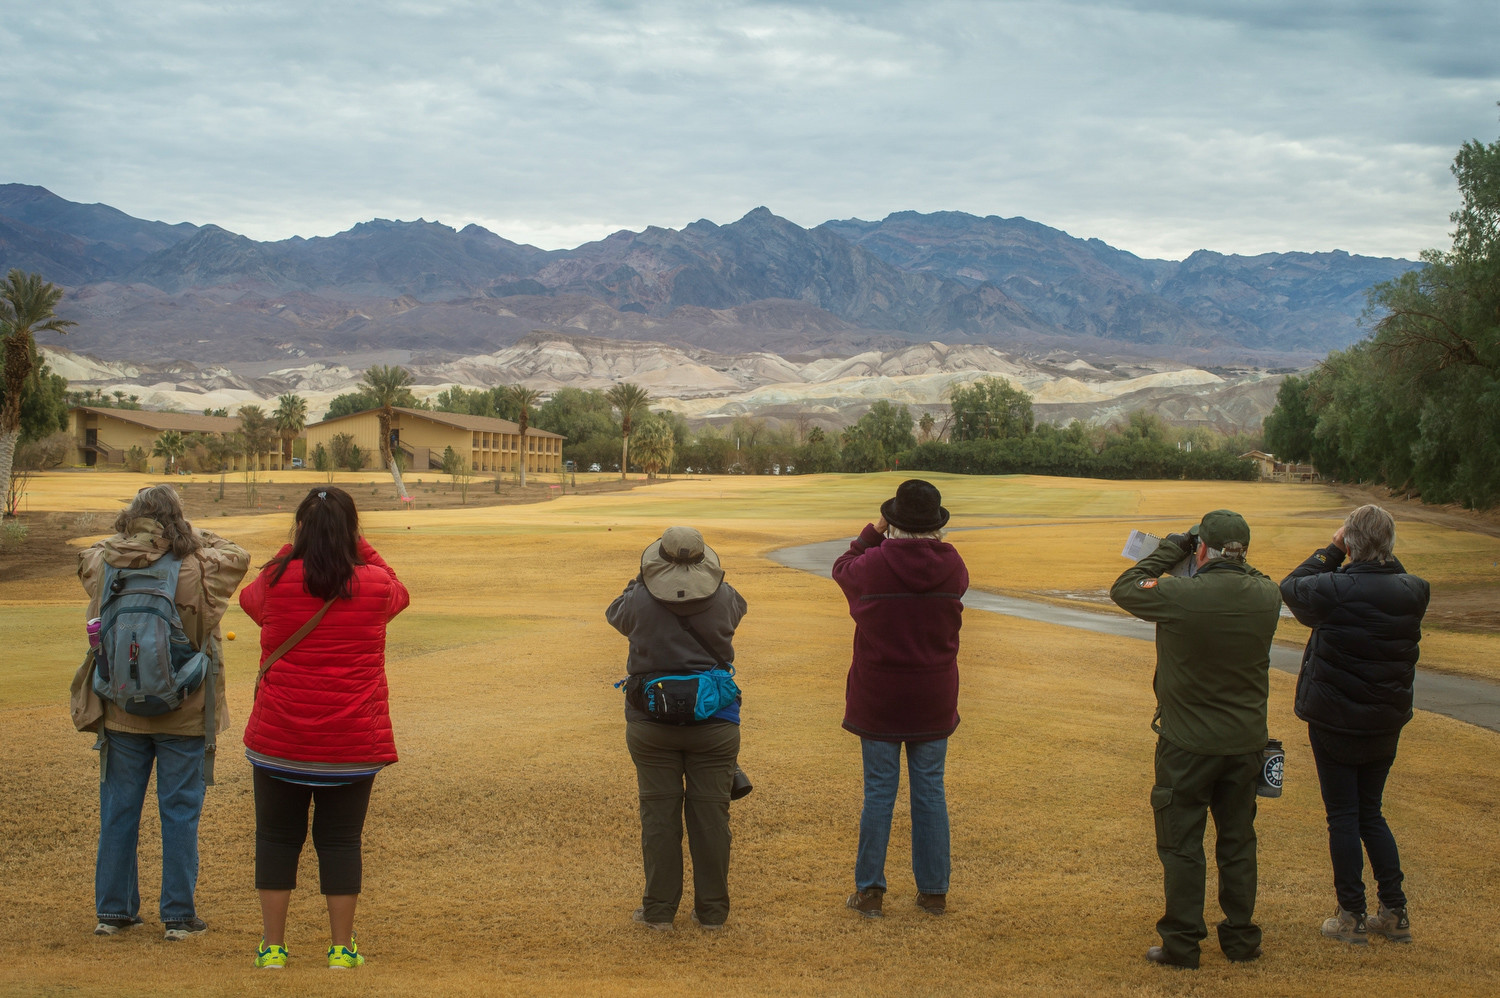 Citizen scientists take part in an annual bird count at Furnace Creek Ranch, California.